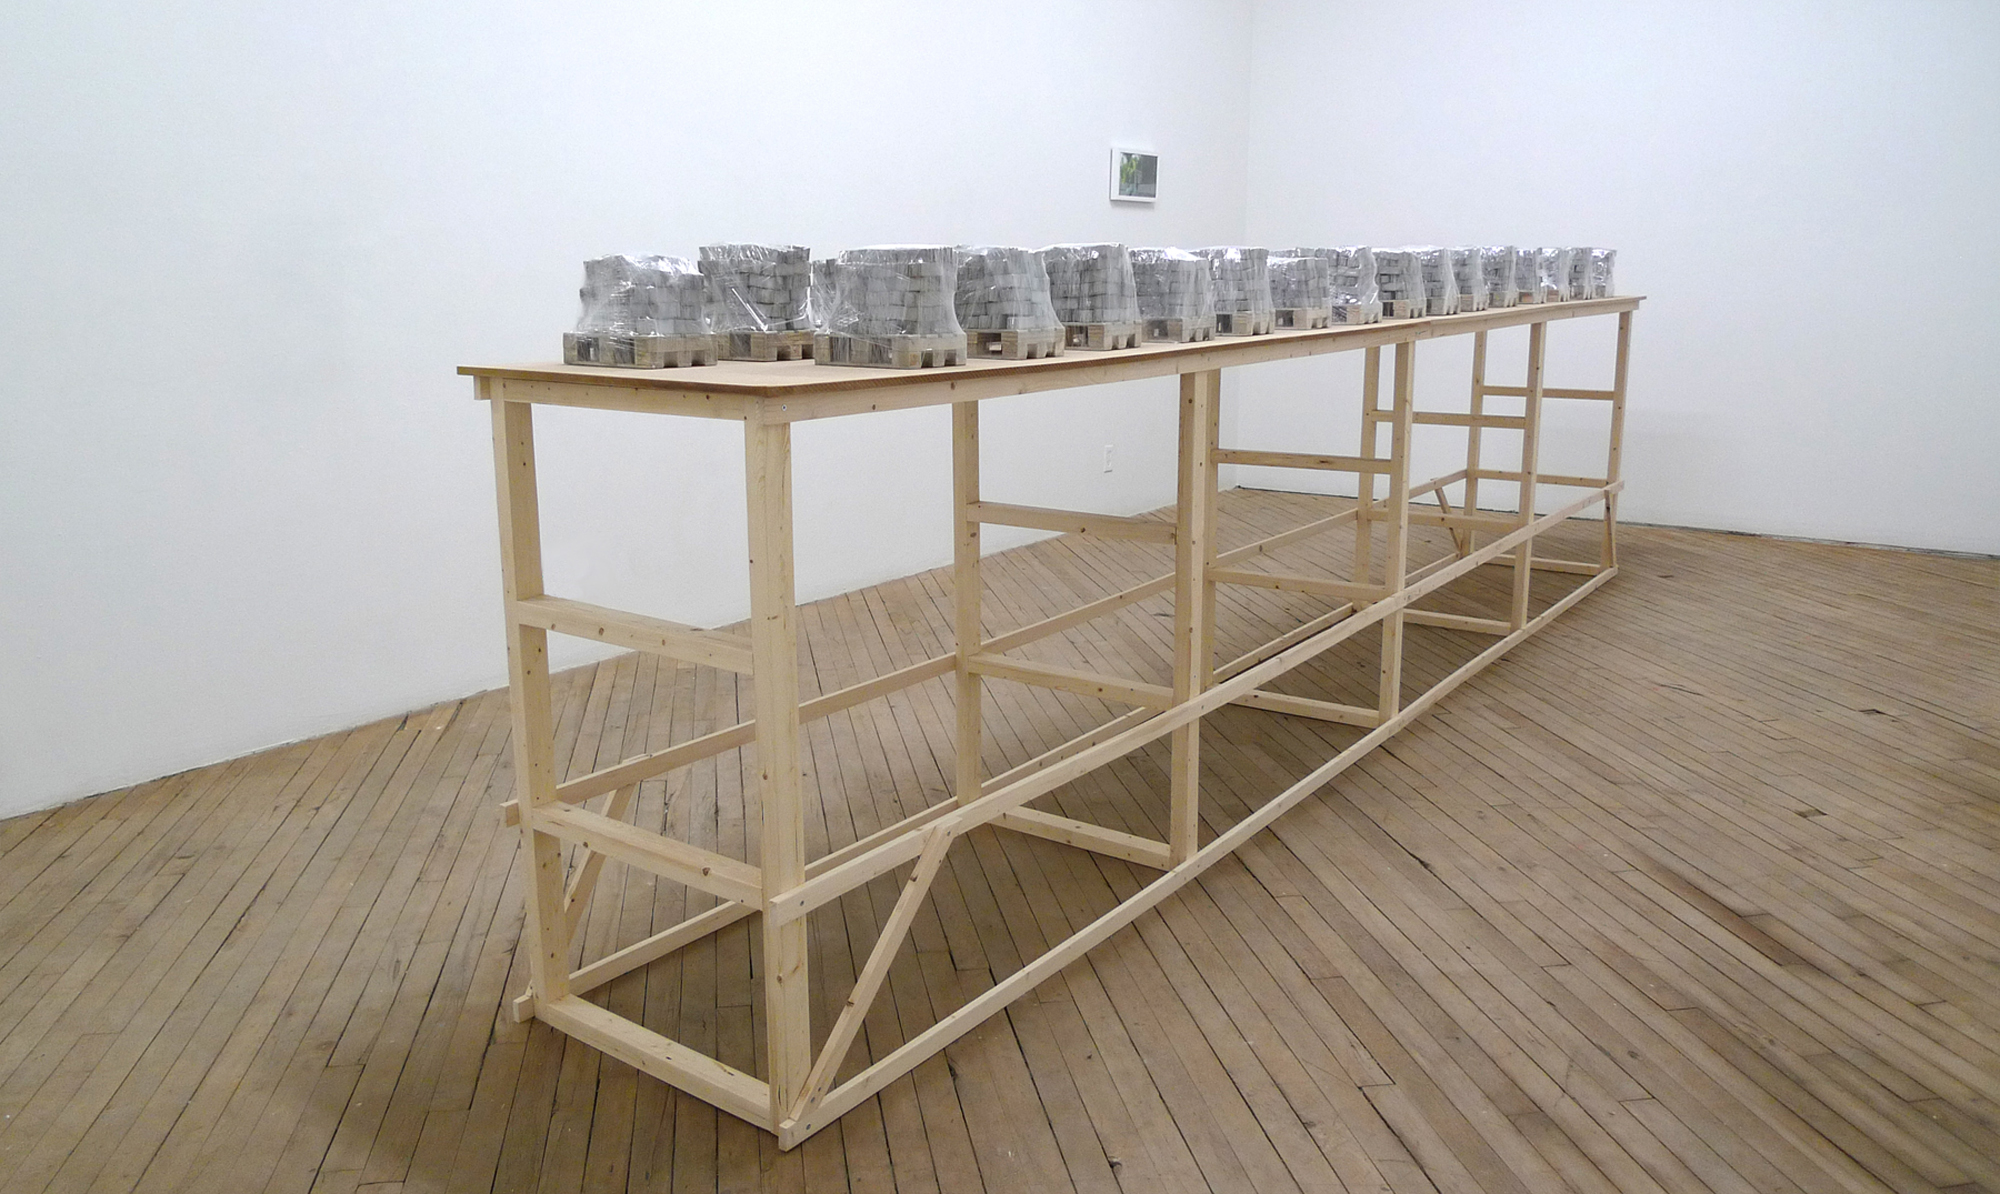 Eliza Myrie   Building a Wall Through My Father   (dress rehearsal) concrete, wood, plastic film, pine, MDF each element approximately 6 x 8 x 10 inches table, 192 x 22 x 50 inches 2016